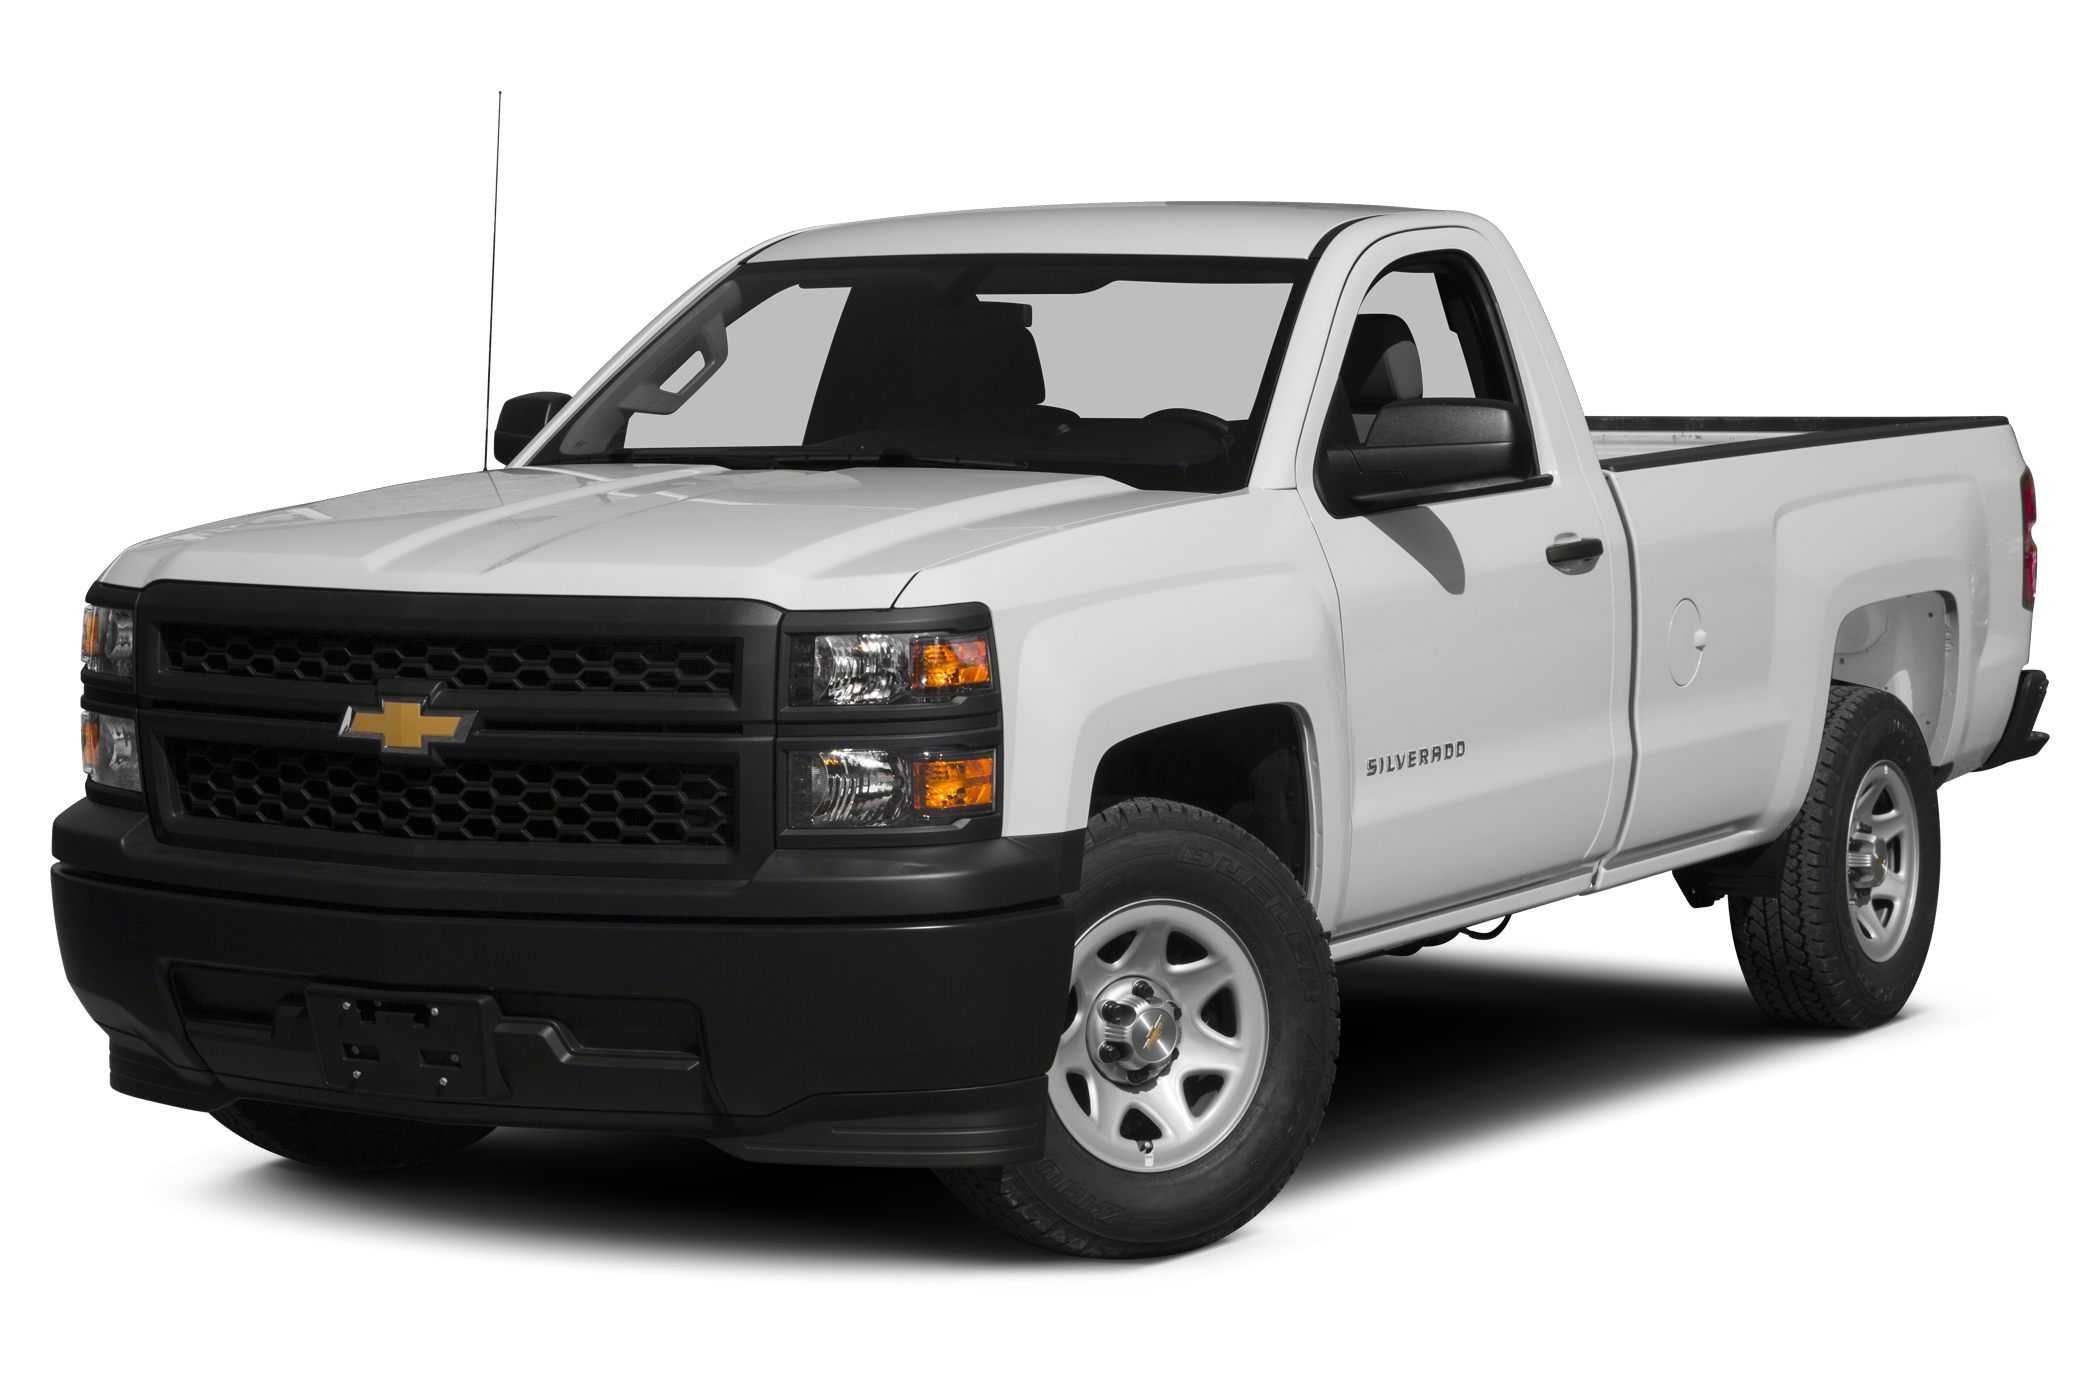 2015 Chevrolet Silverado 1500 1LT Extended Cab Pickup for sale in Leesburg for $34,811 with 2 miles